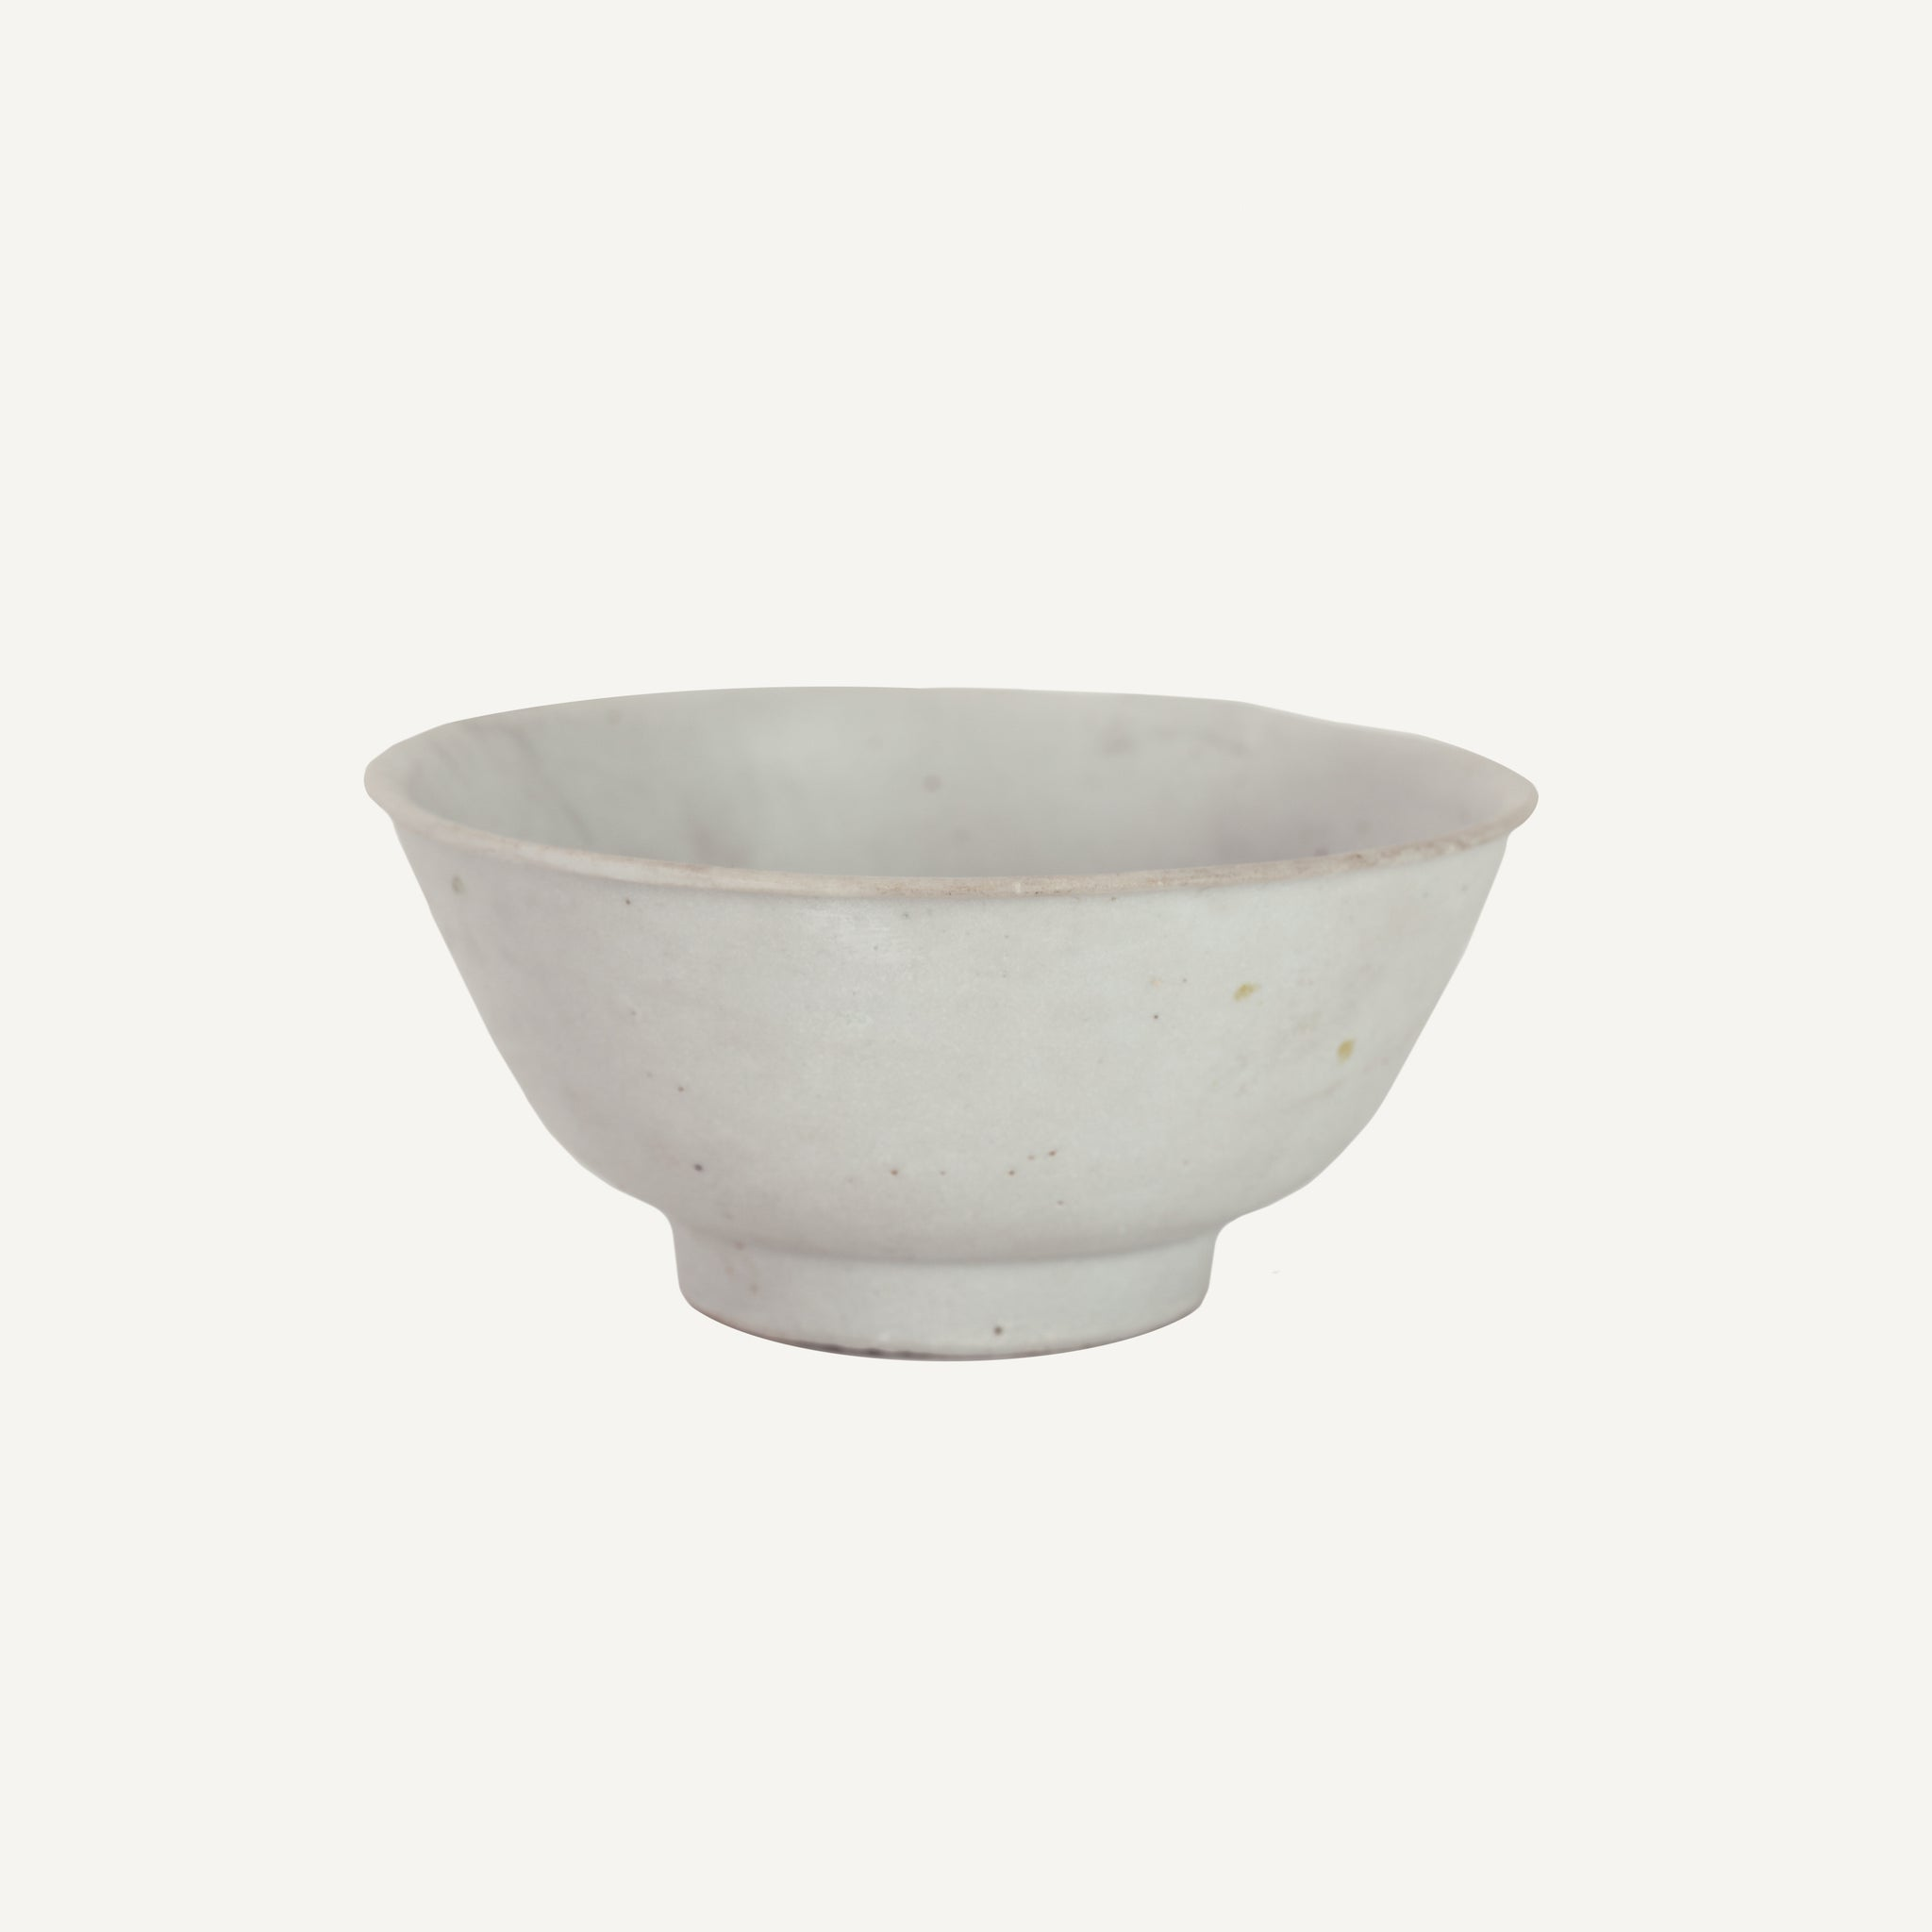 ANTIQUE BLANC DE CHINE BOWL